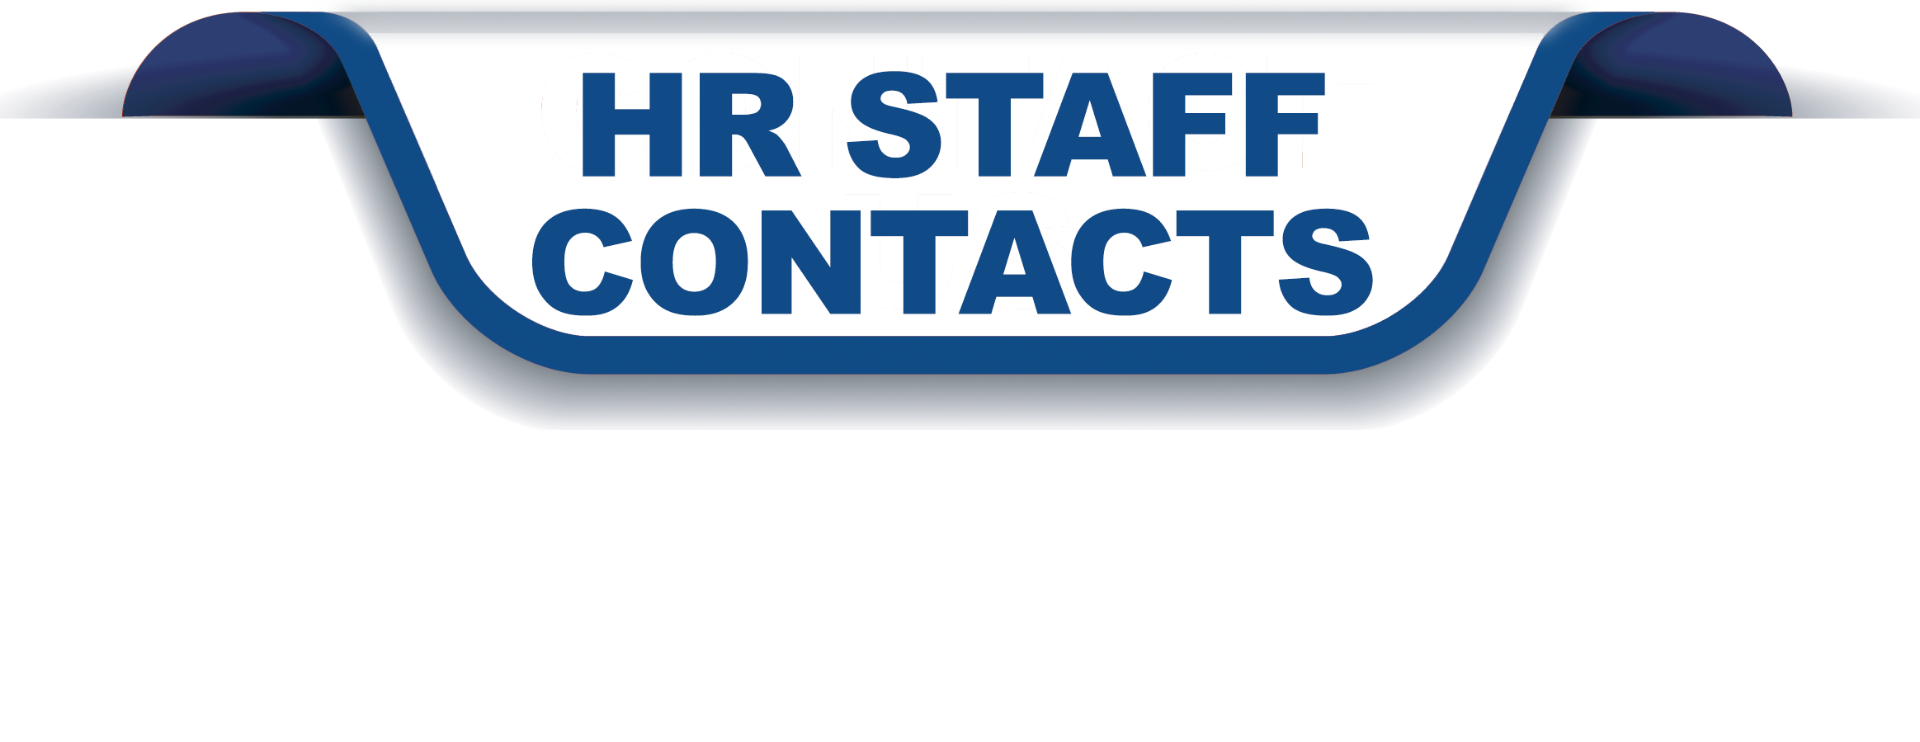 HR contacts link